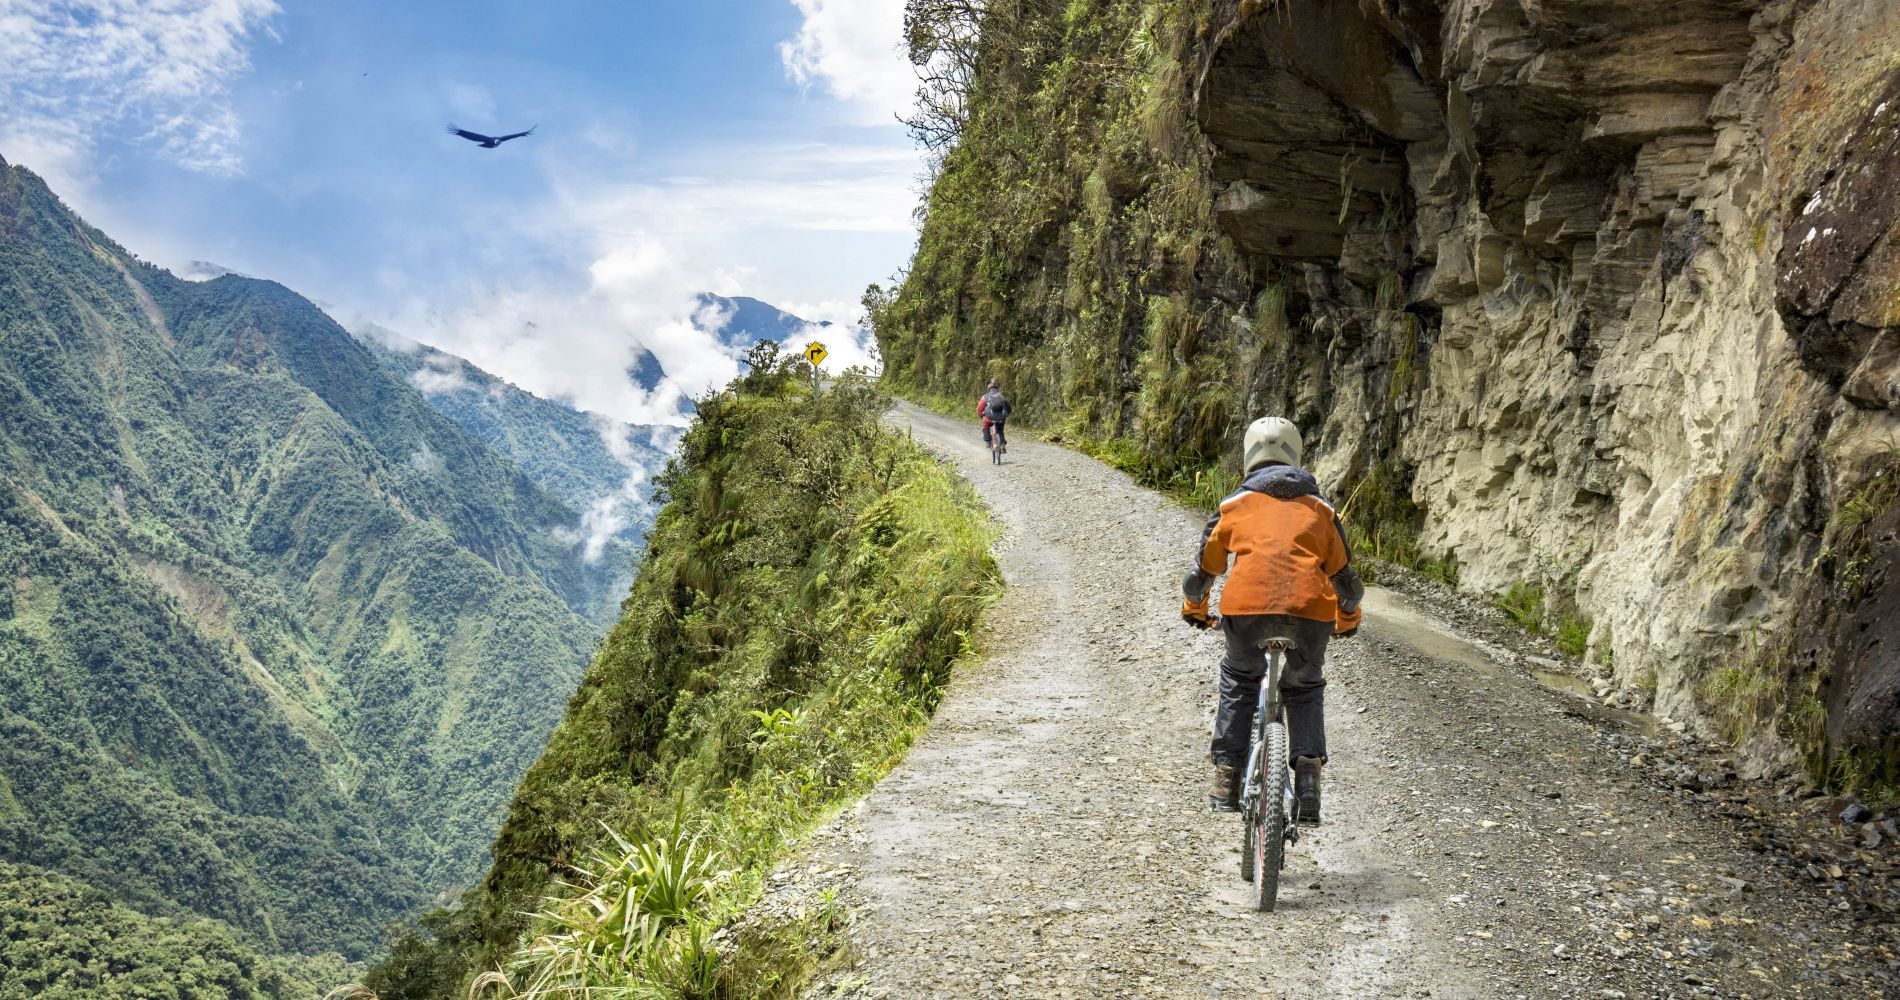 Mountain biking down The World's Most Dangerous Road in Bolivia for Two